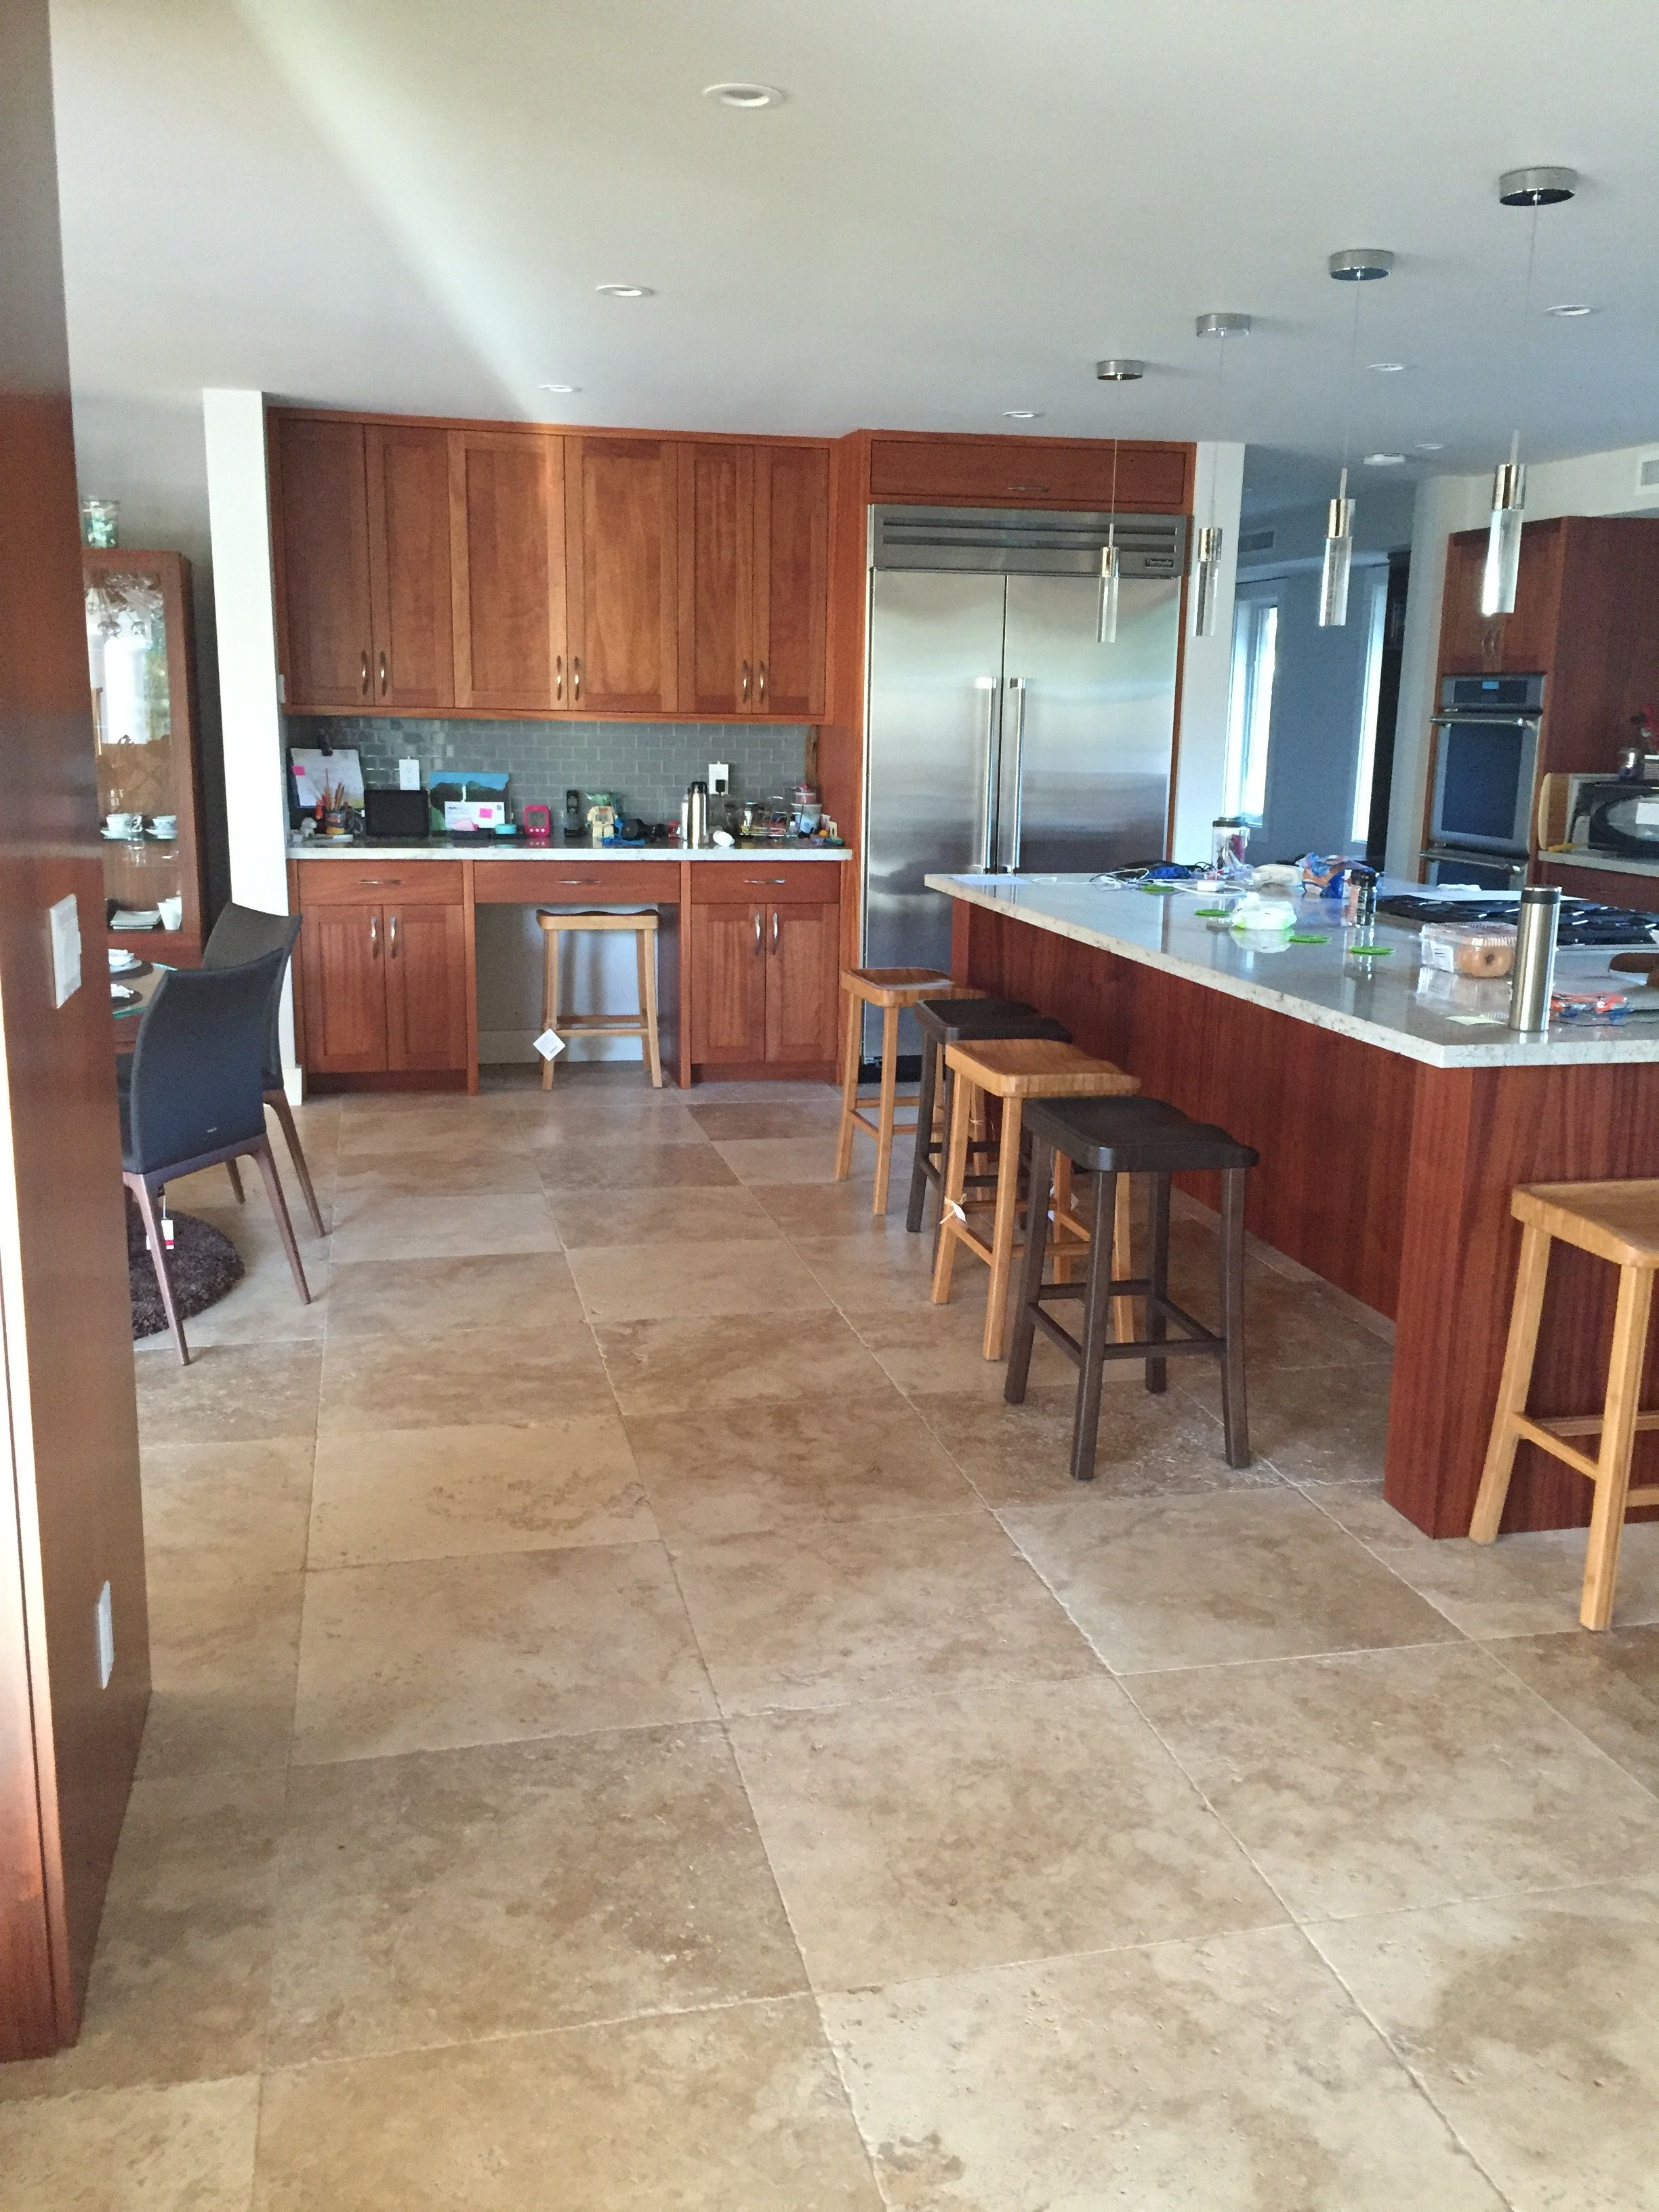 ideas prepare for kitchen vivomurcia laminate architecture within encourage renovation lowes floors depot tiles of home types throughout sale wood flooring